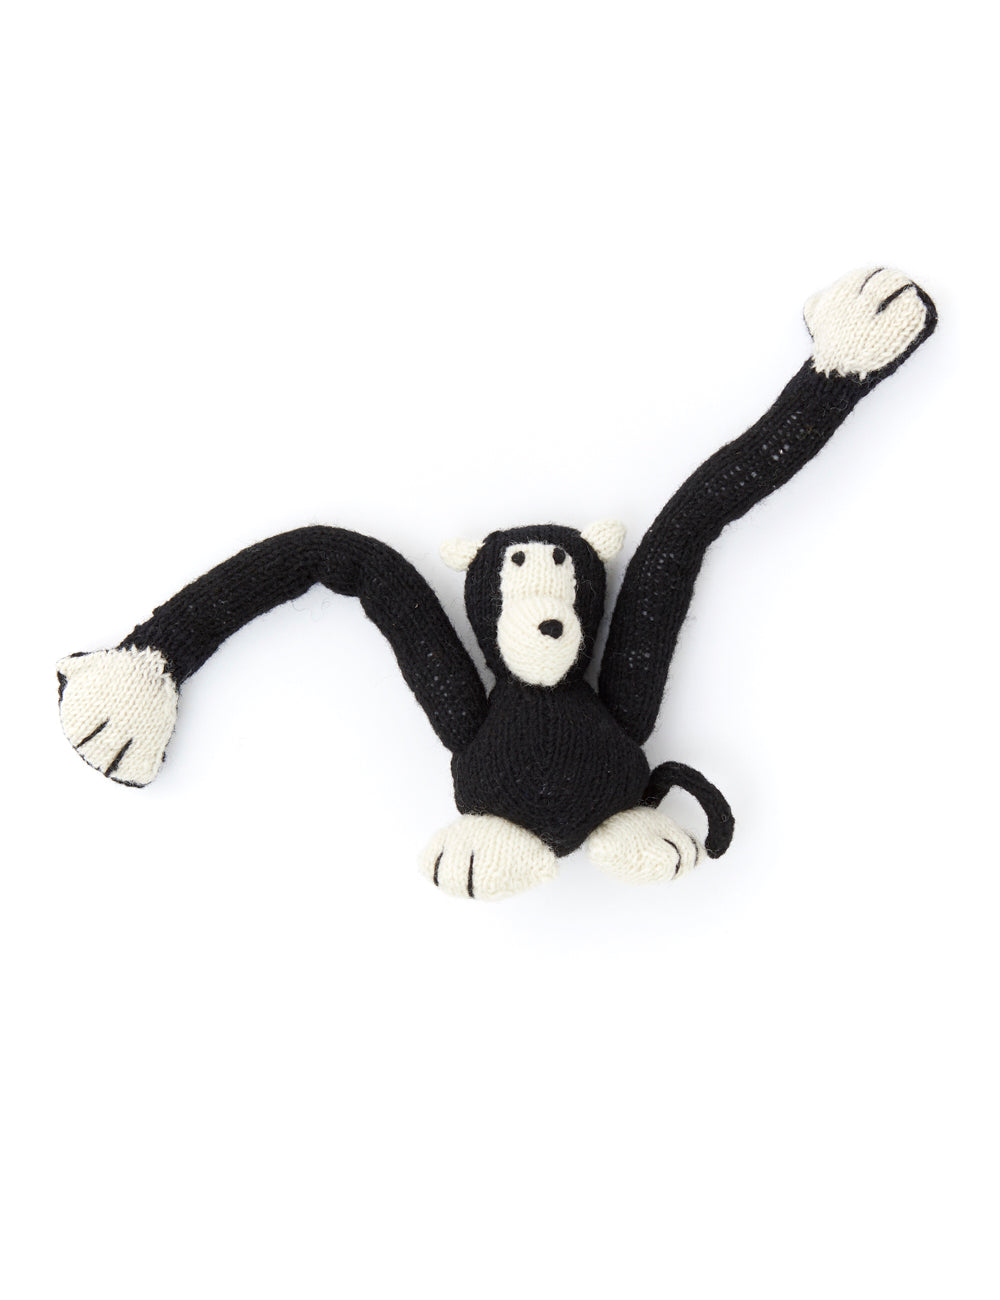 Monkey Dog Toy | Black & White